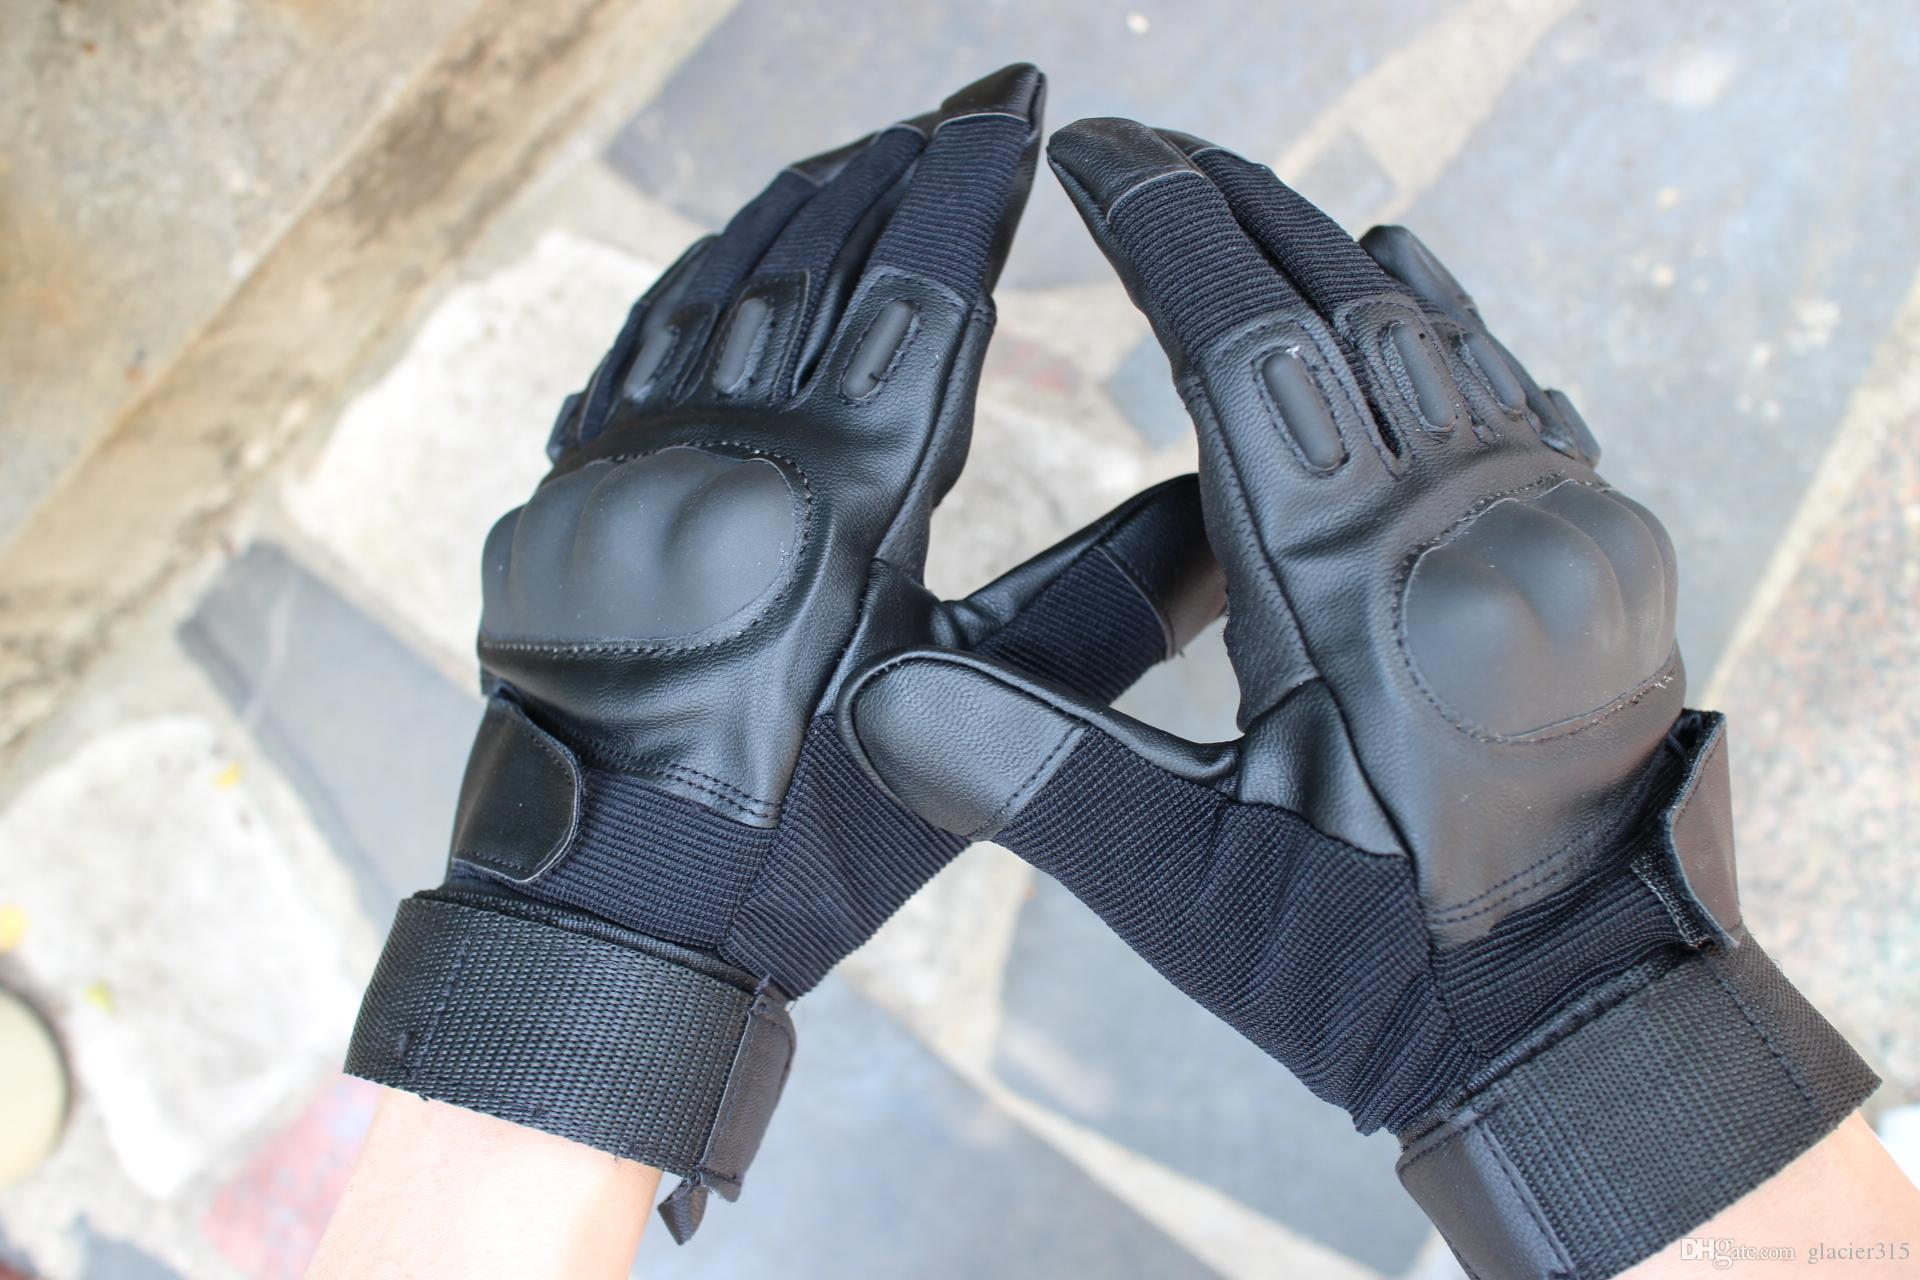 new sale top quality brand glove Full finger Tactical Shooting Military Cycling hunting Camping Sport Outdoor Game Gloves